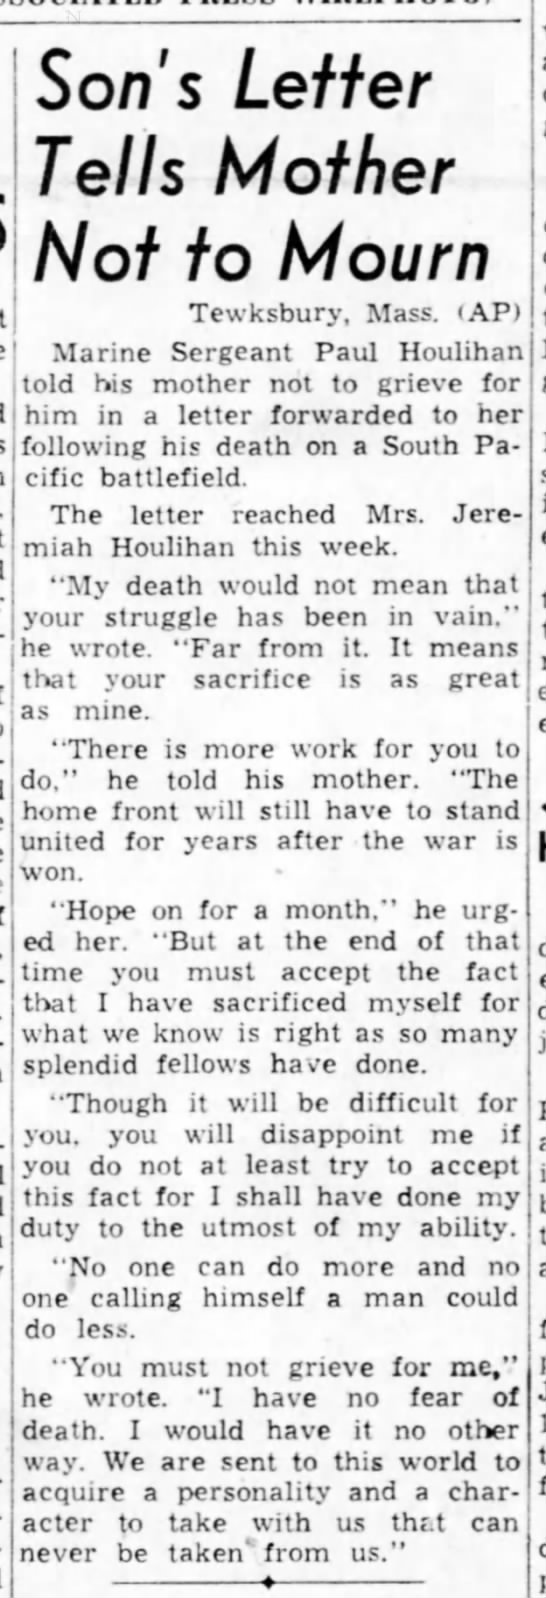 WWII letter home: 1944 - Son's Letter Tells Mother Not to Mourn...